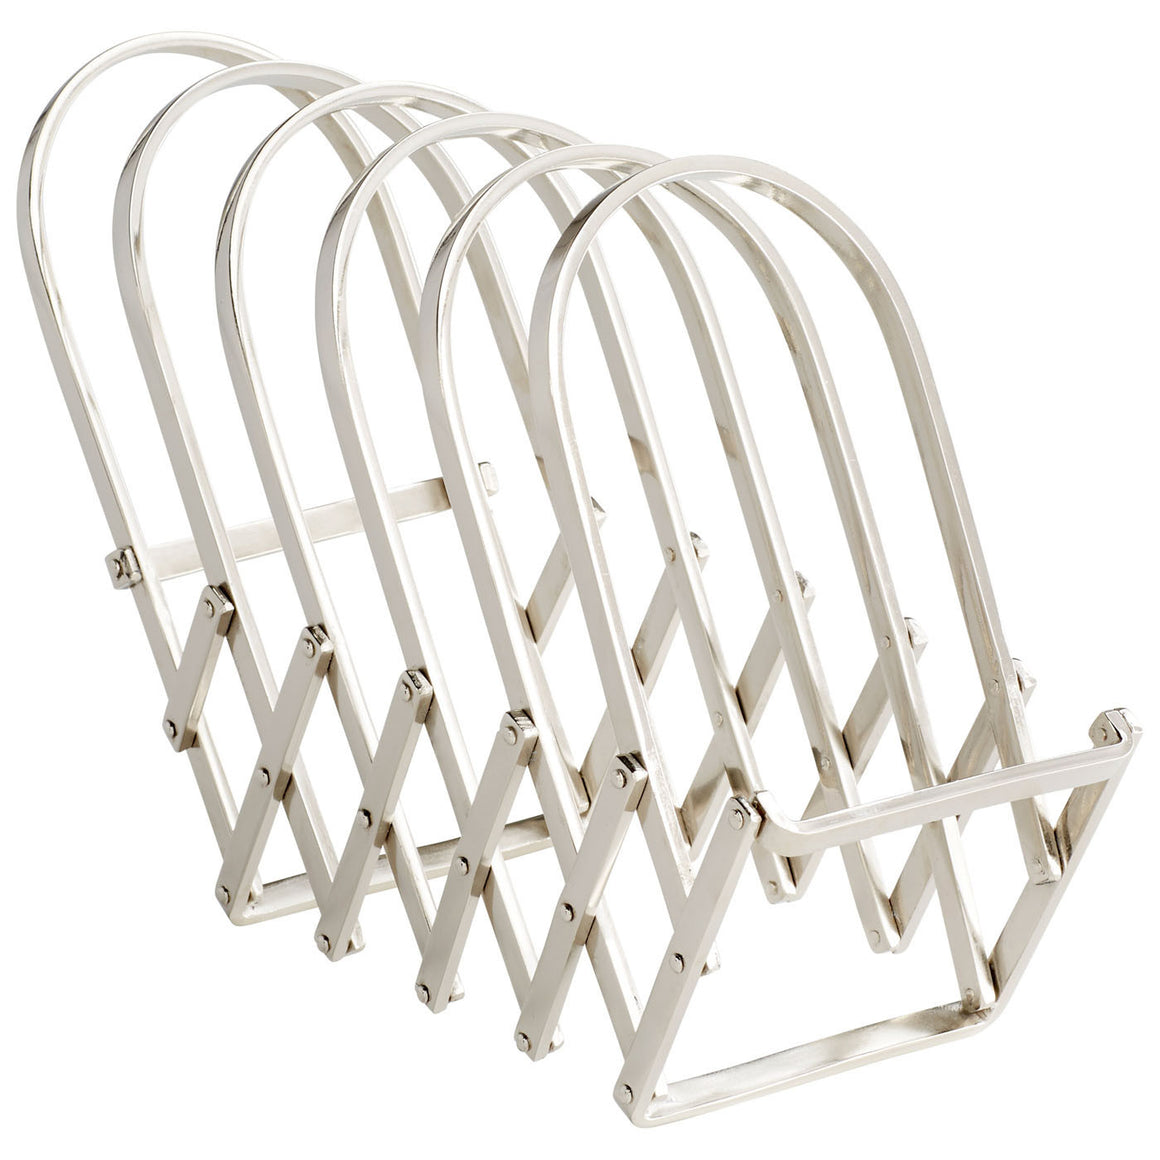 Accordian Magazine Rack 08977 by Cyan Design